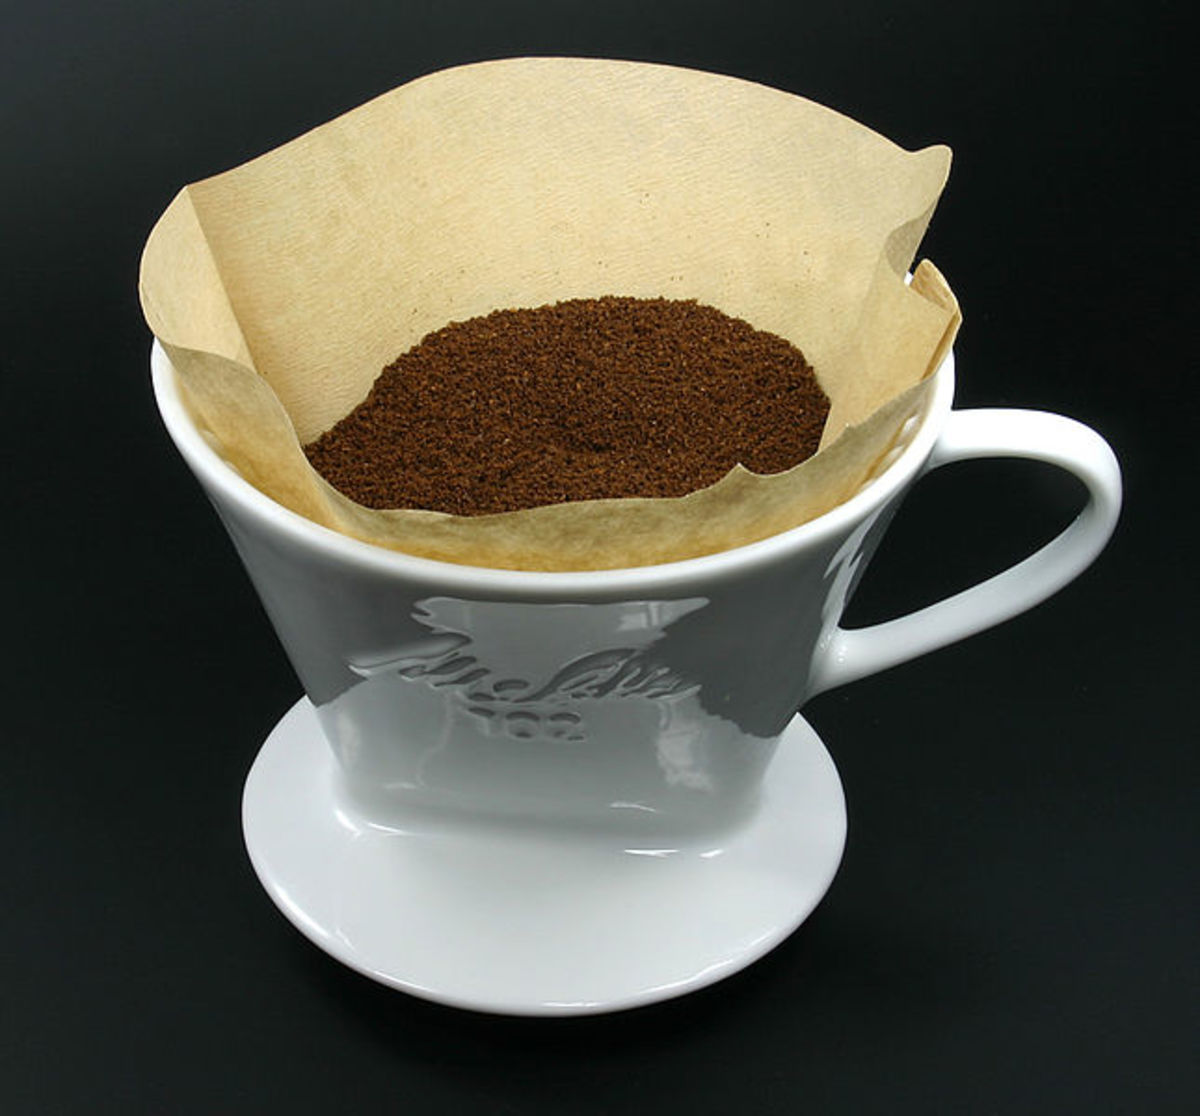 The simplest way of making drip coffee is to use a paper filter in a funnel.  You need quite a coarse grind for the method to work well.